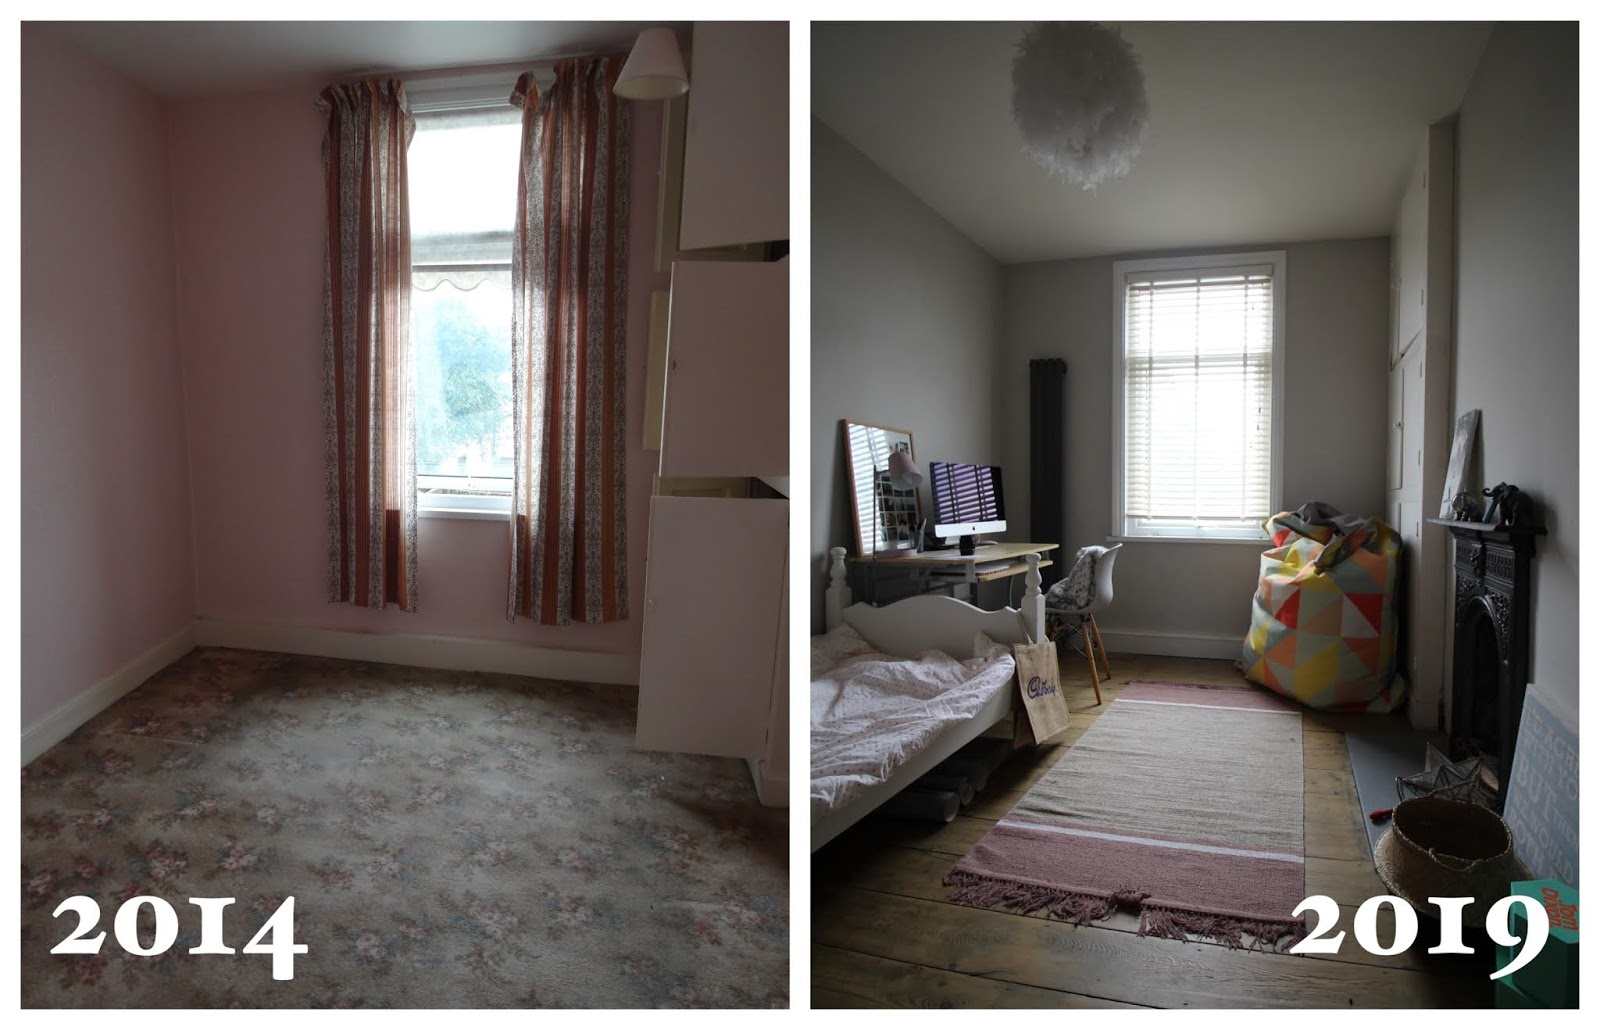 small bedroom renovation before and after 5 years